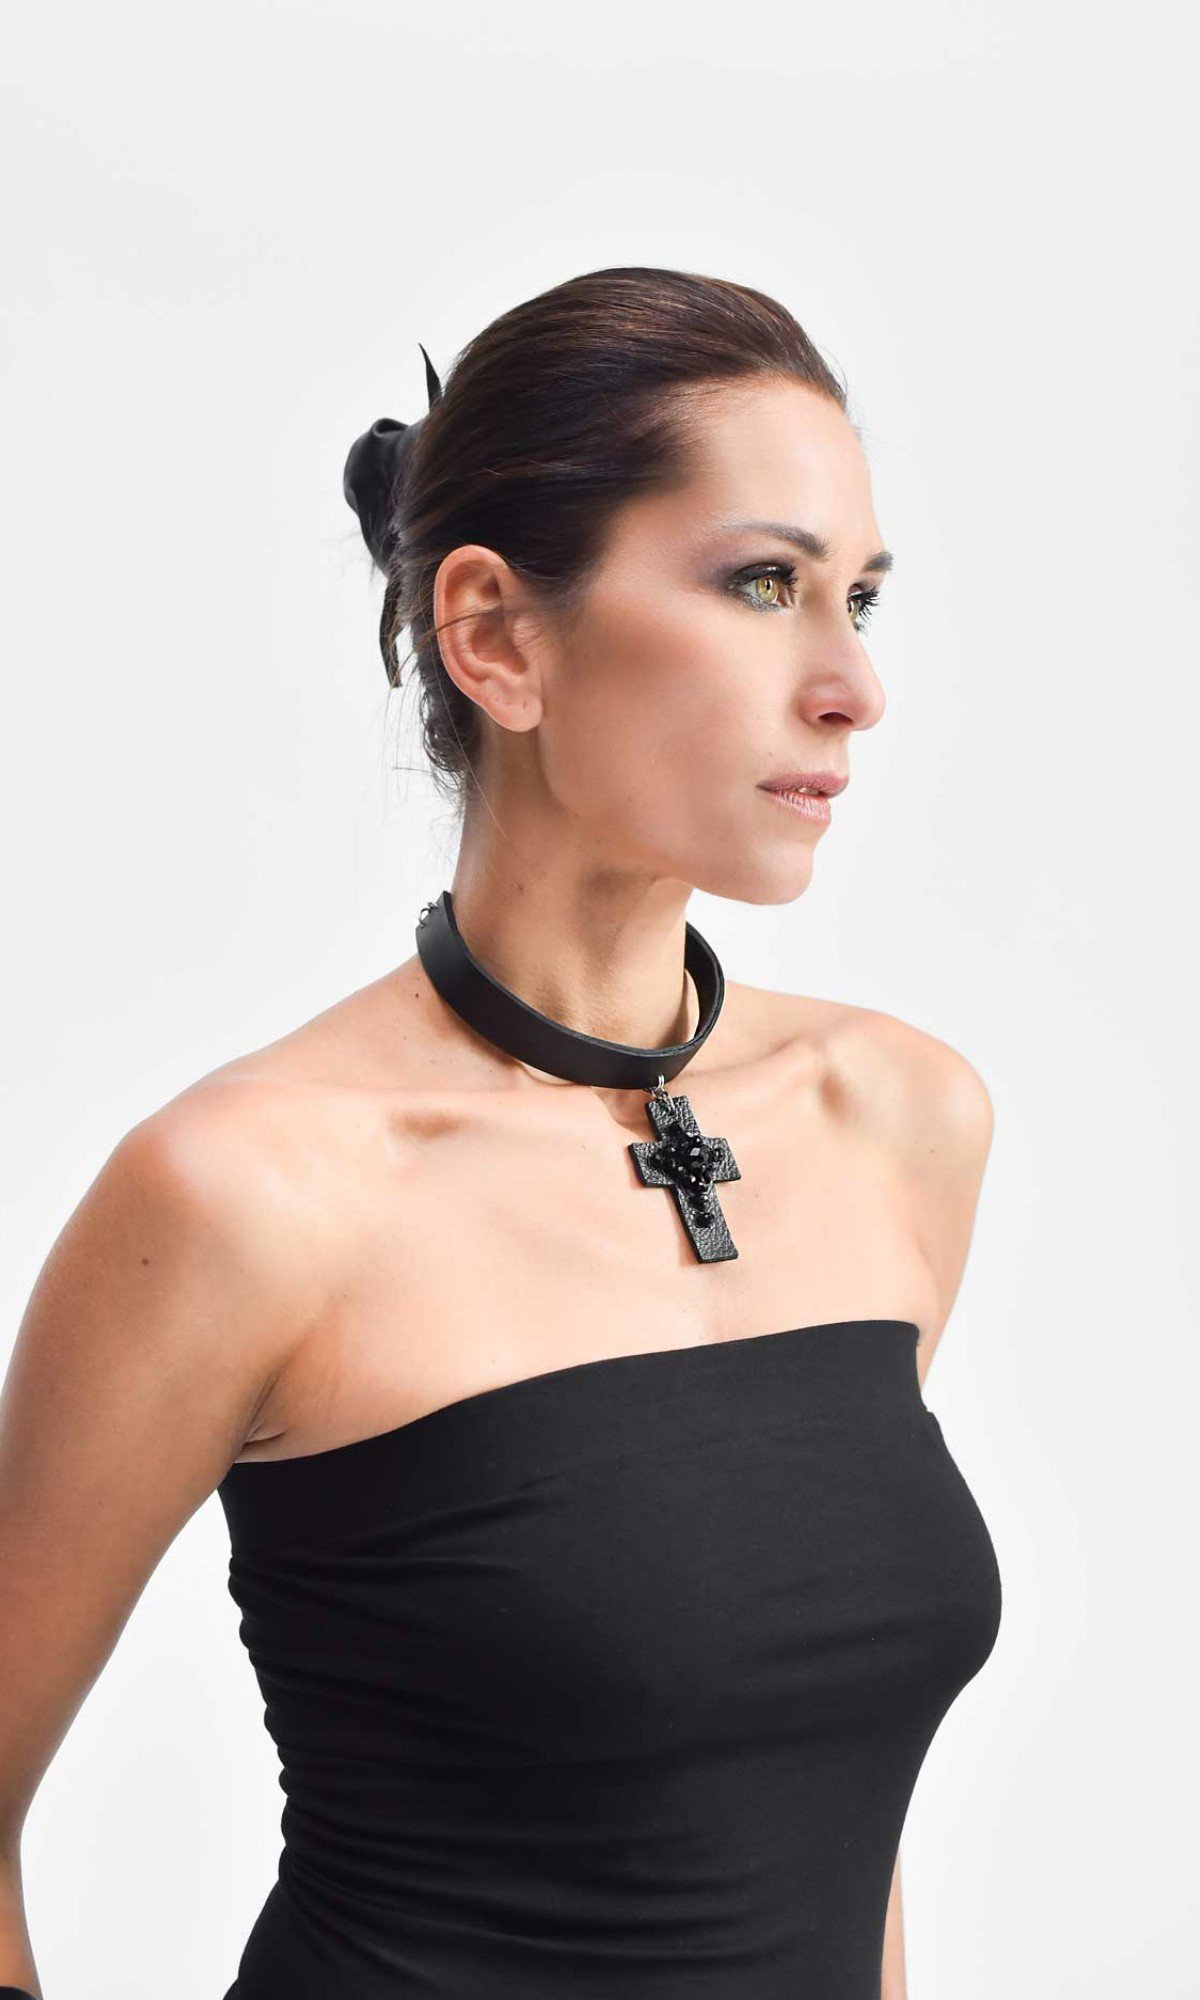 Leather choker with cross pendant A16869